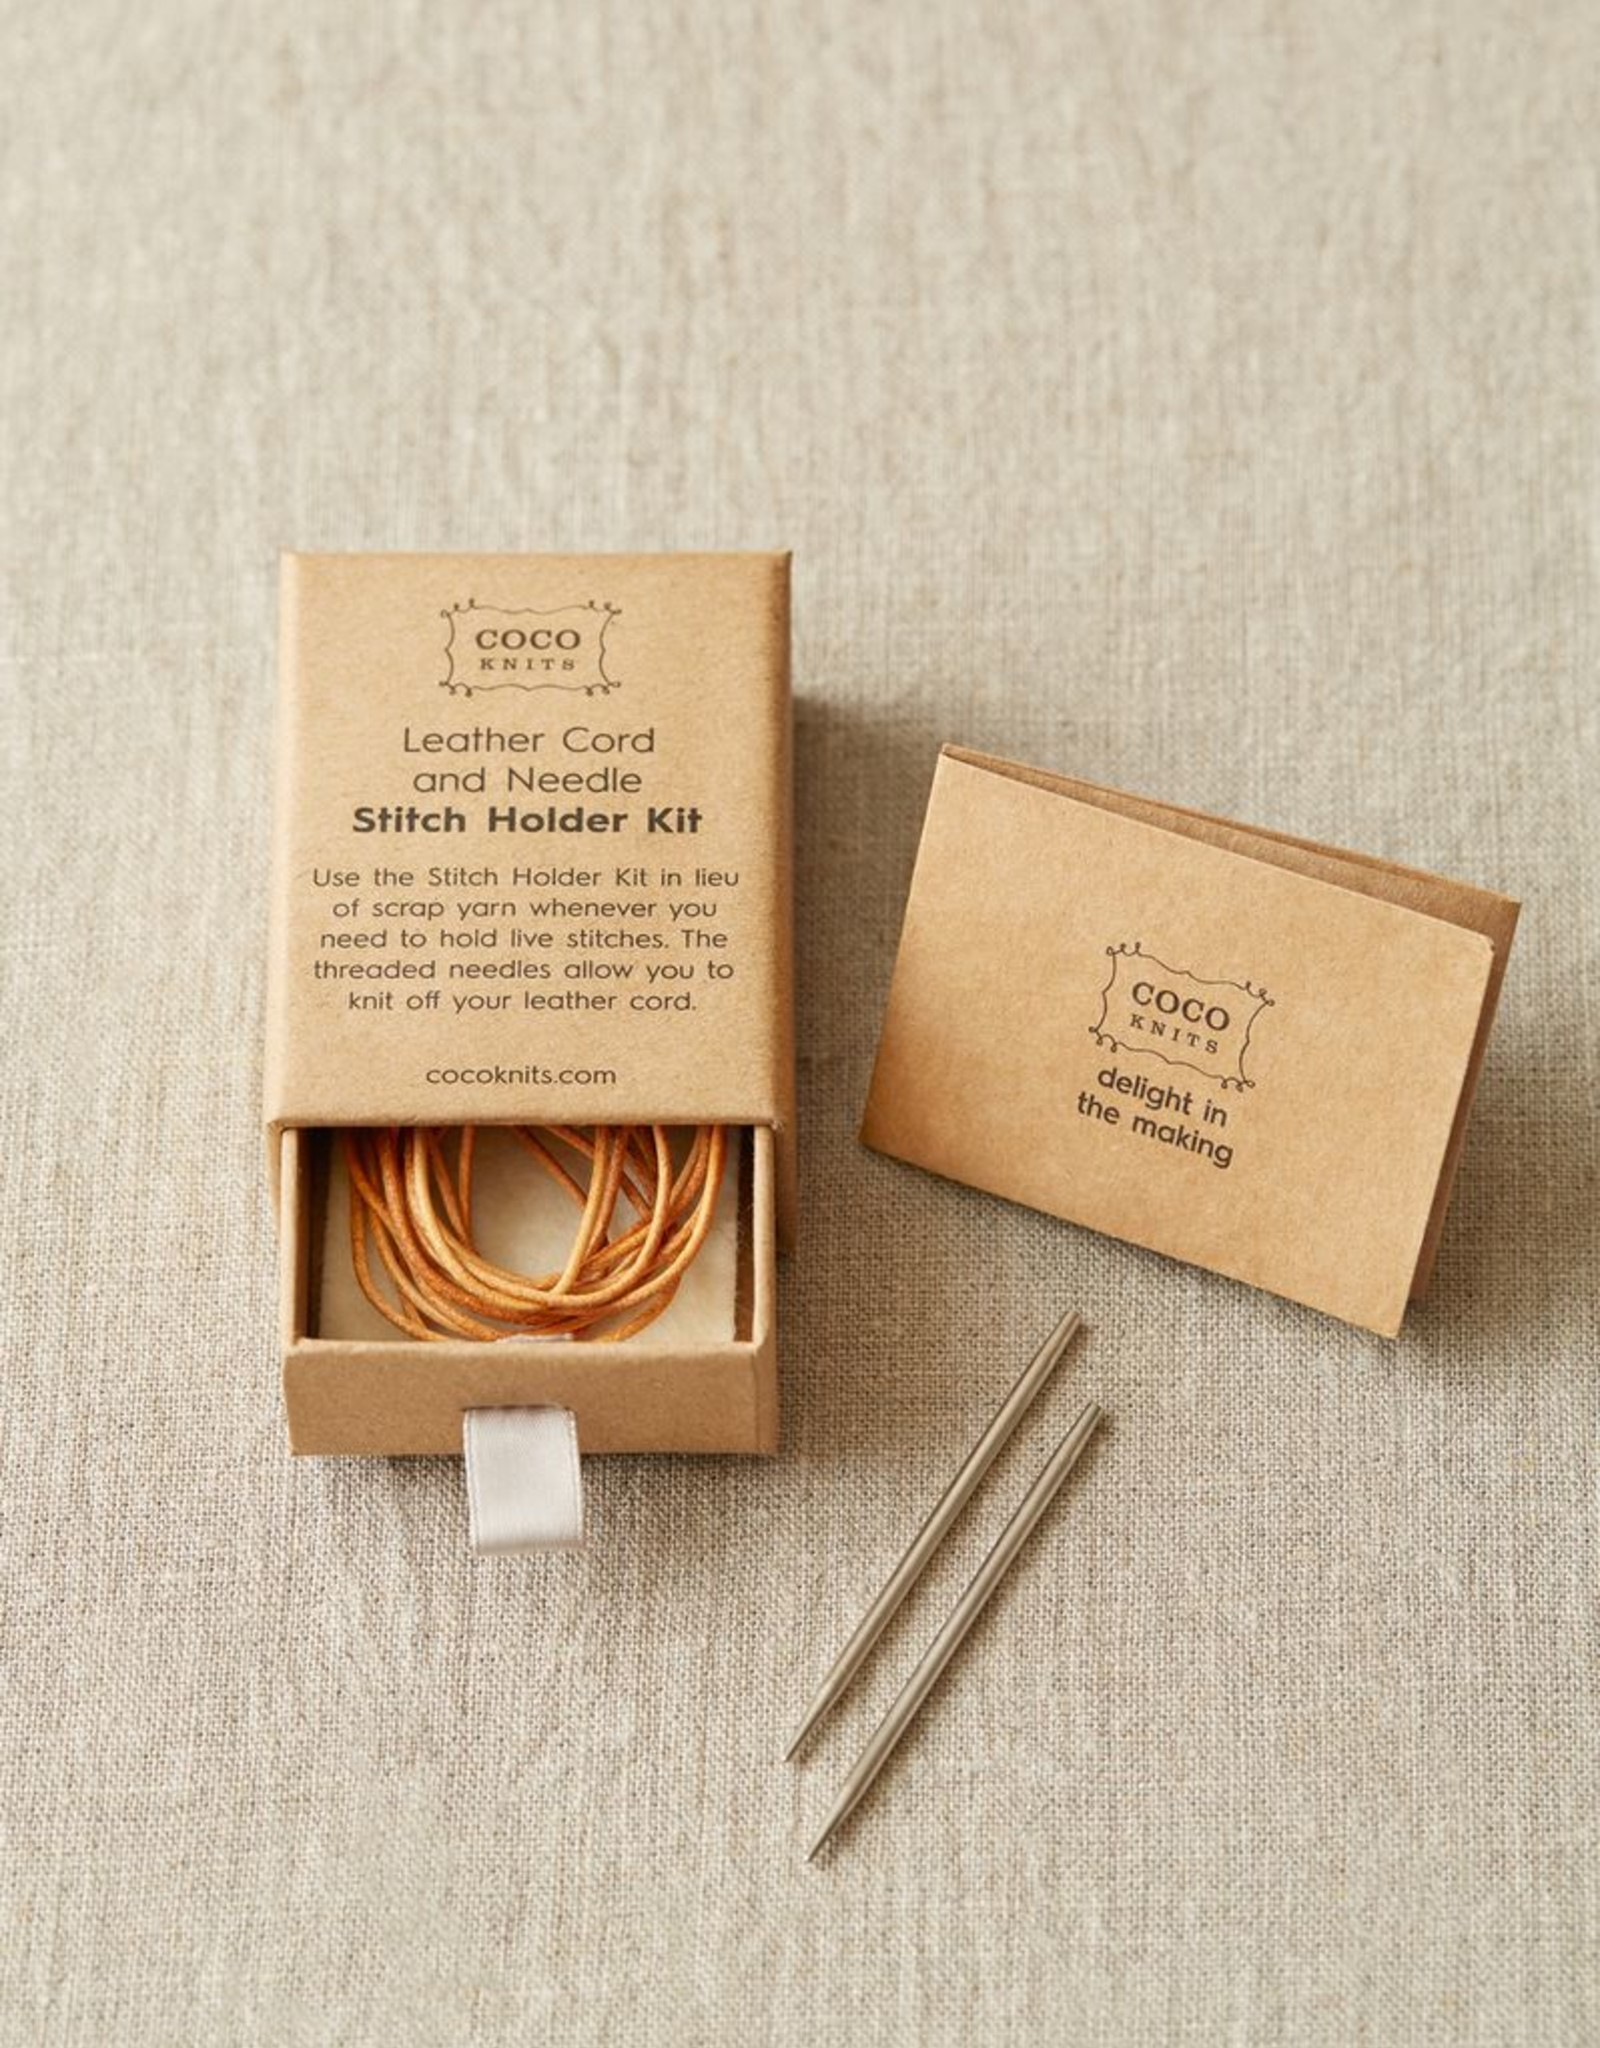 Cocoknits Leather Cord and Needle Stitch Holder Kit